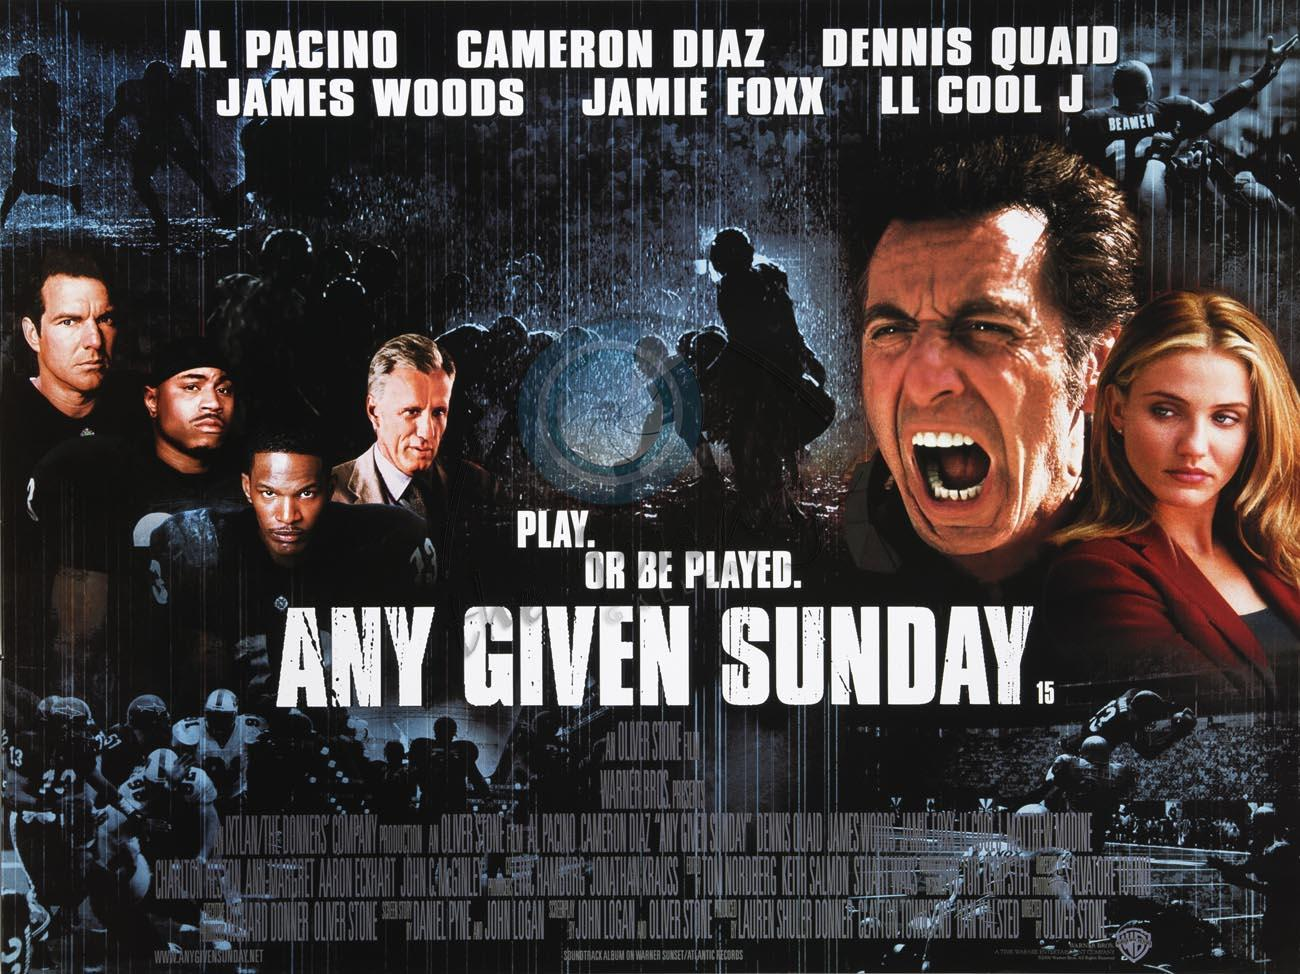 spend your any given sunday somewhere else � shmeeme